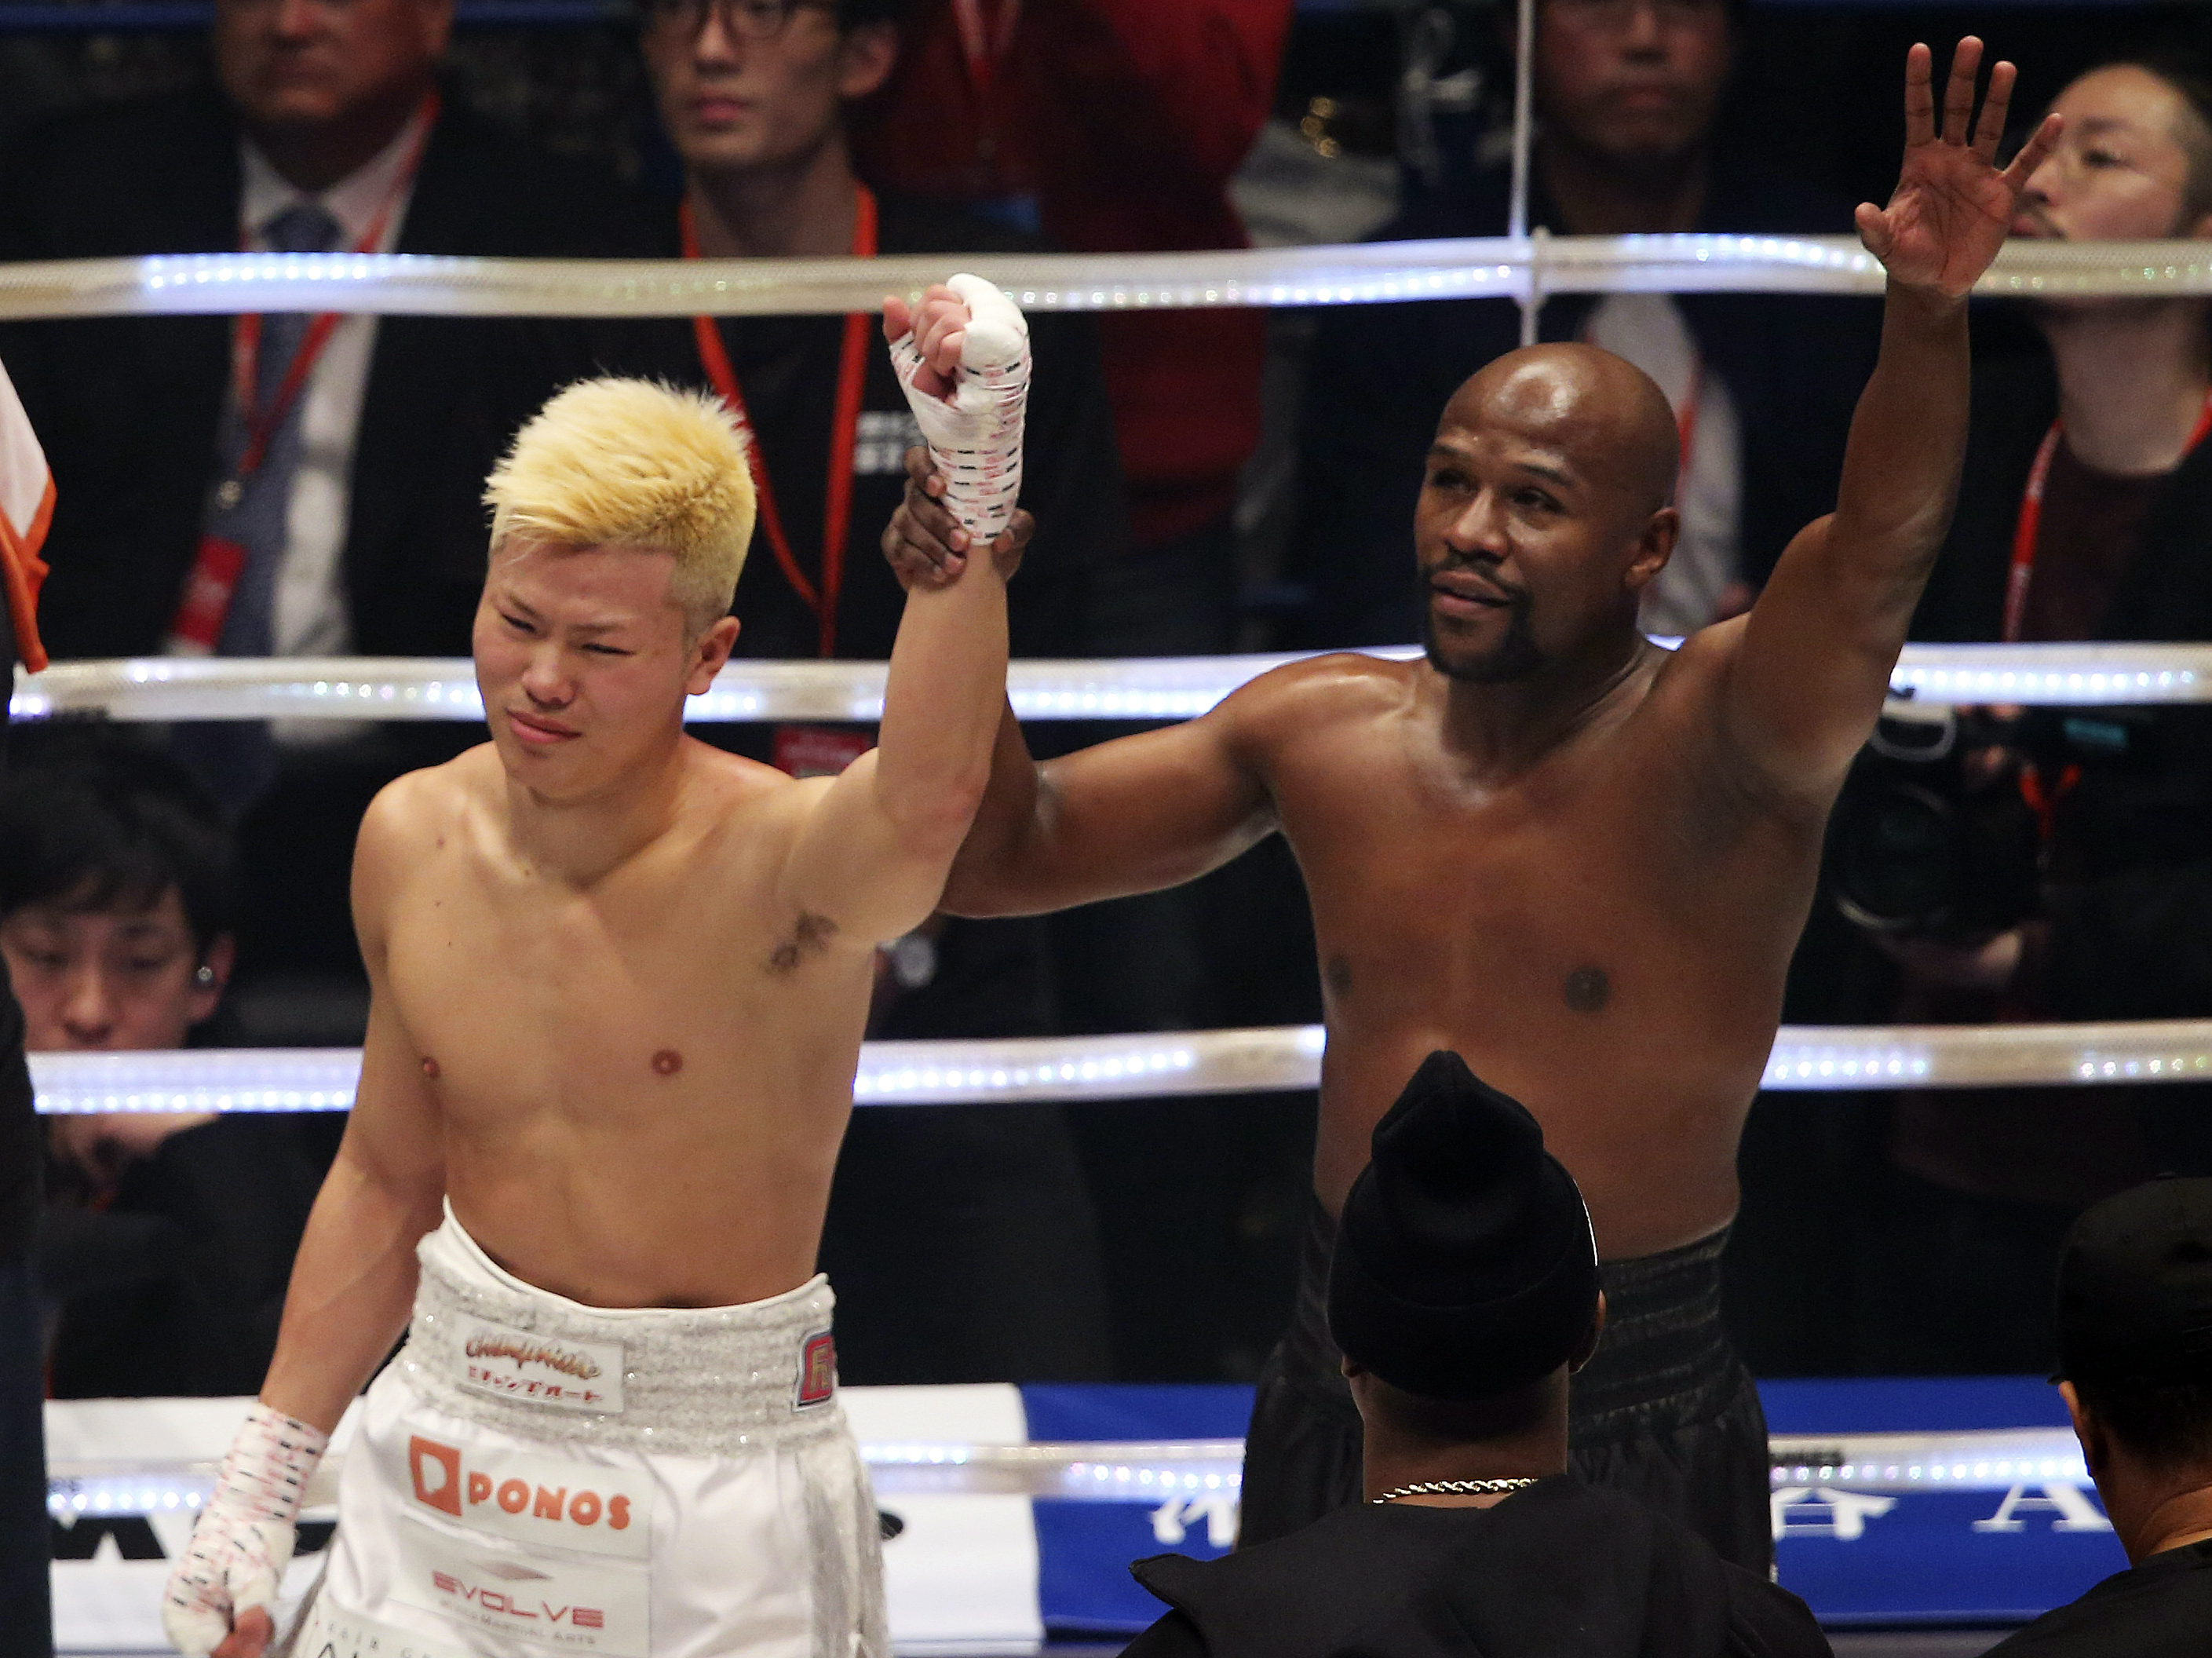 Conor McGregor Calls For MMA Exhibition Against Tenshin Nasukawa